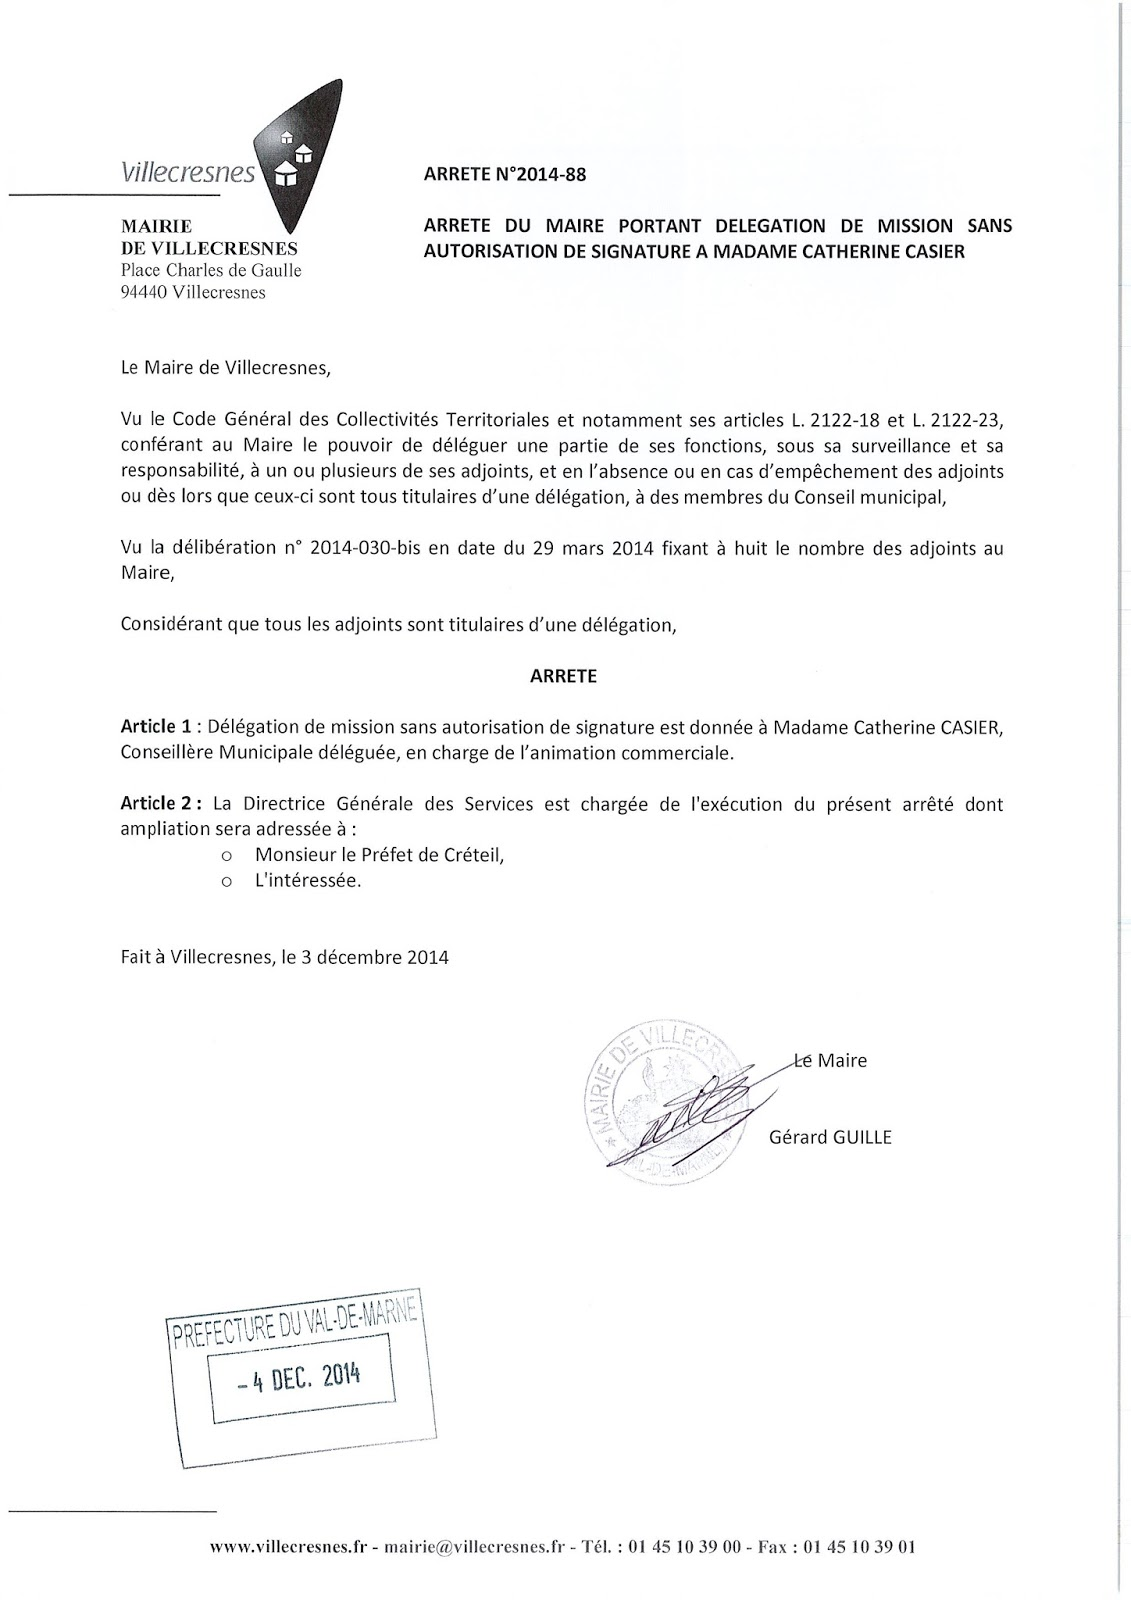 2014-088 Délégation de fonction mission sans autorisation de signature à Madame Catherine Casier